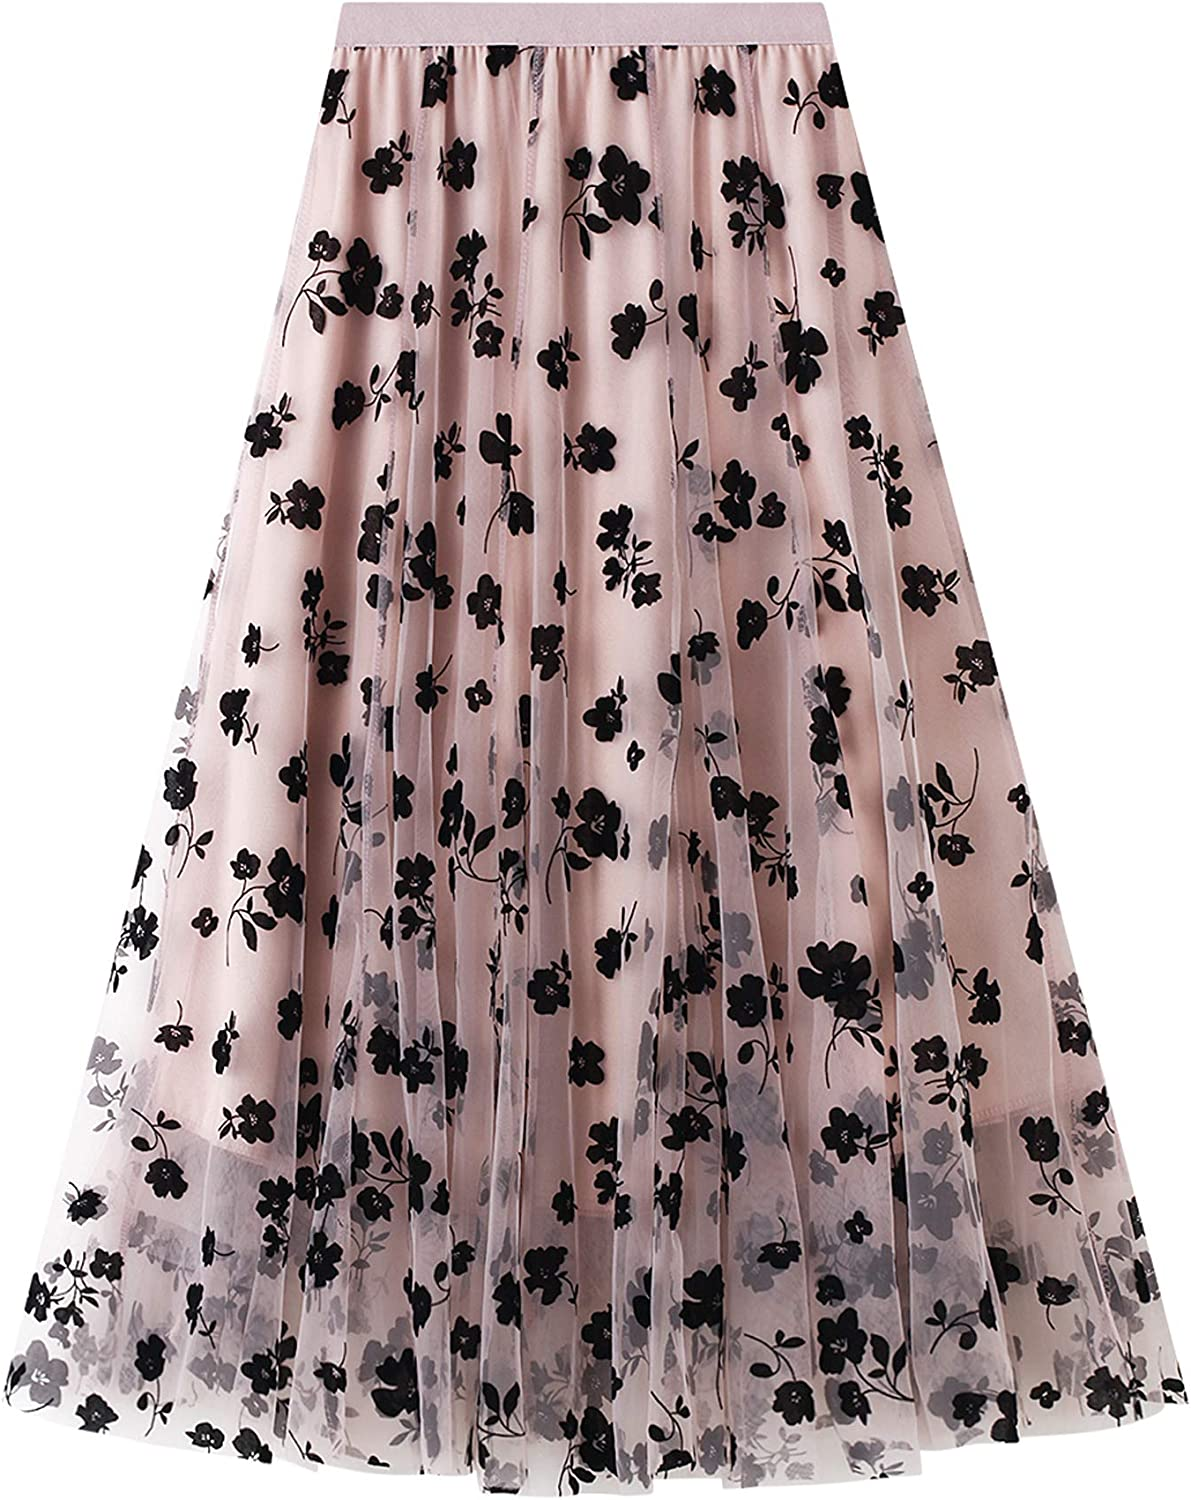 Women Long Pleated Skirts High Waist Pleated A-line Swing Skirt Stylish Flared Maxi Skirts Flower Embroidery